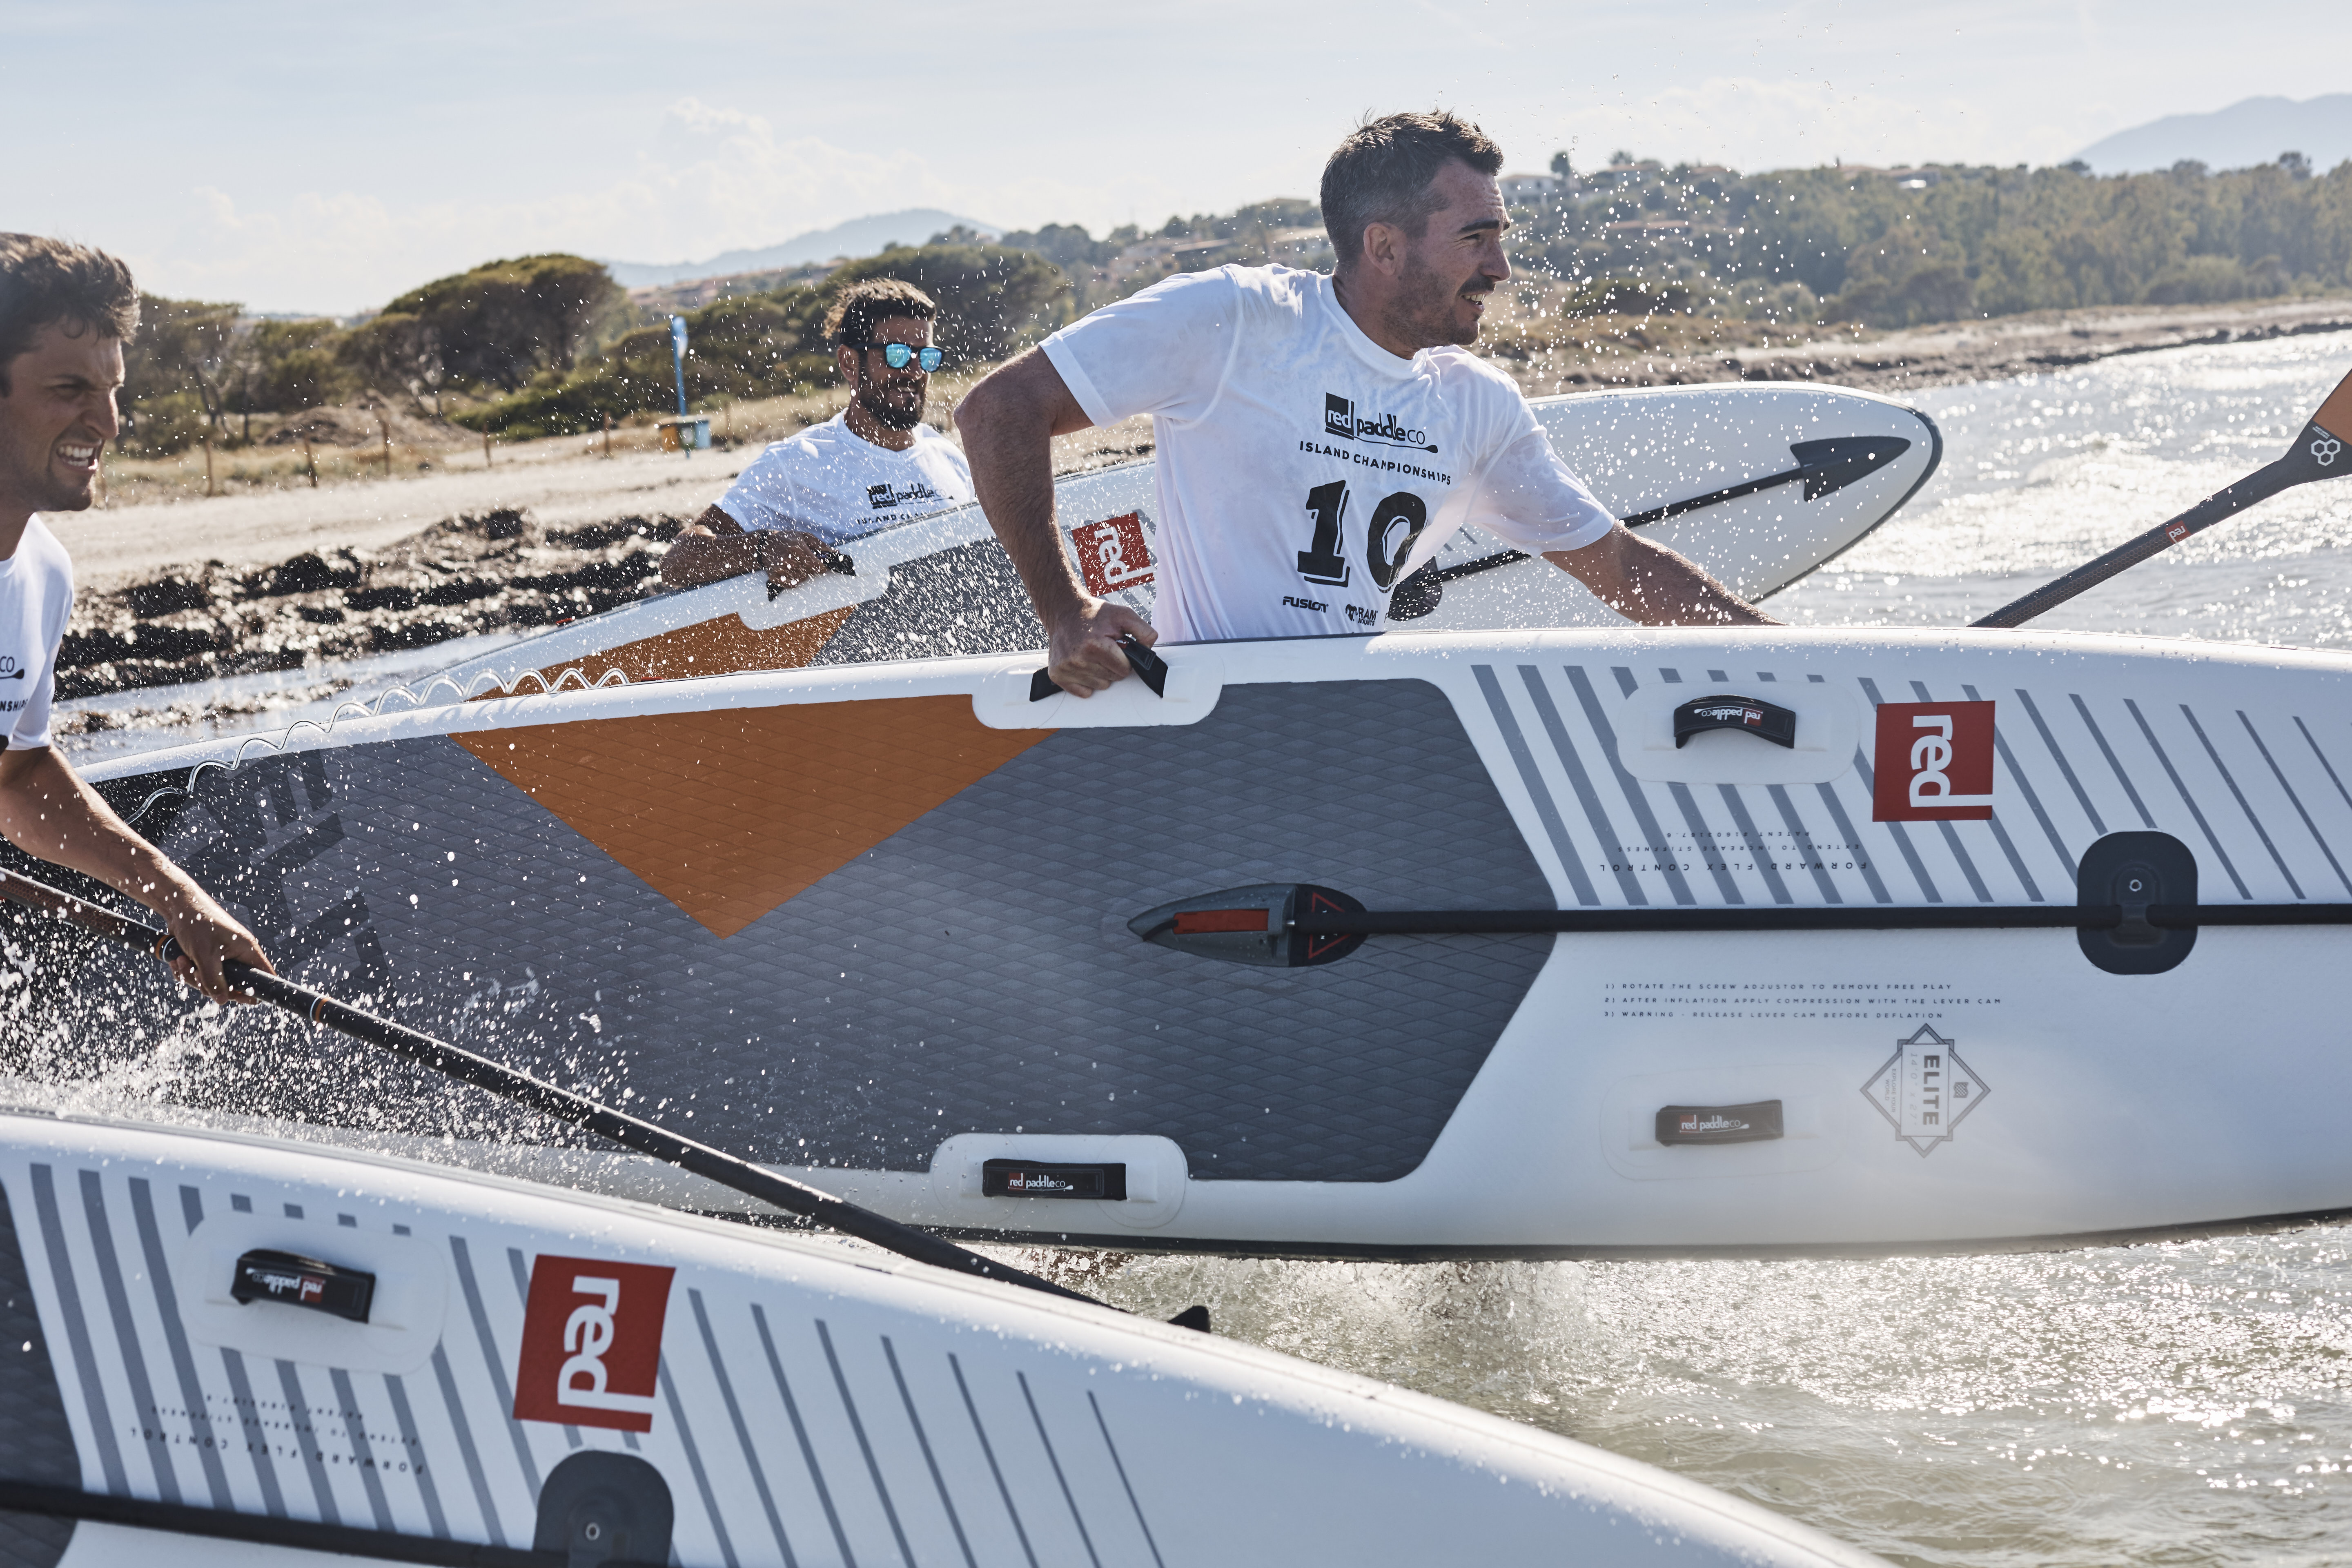 Men racing with Red Paddle Co boards